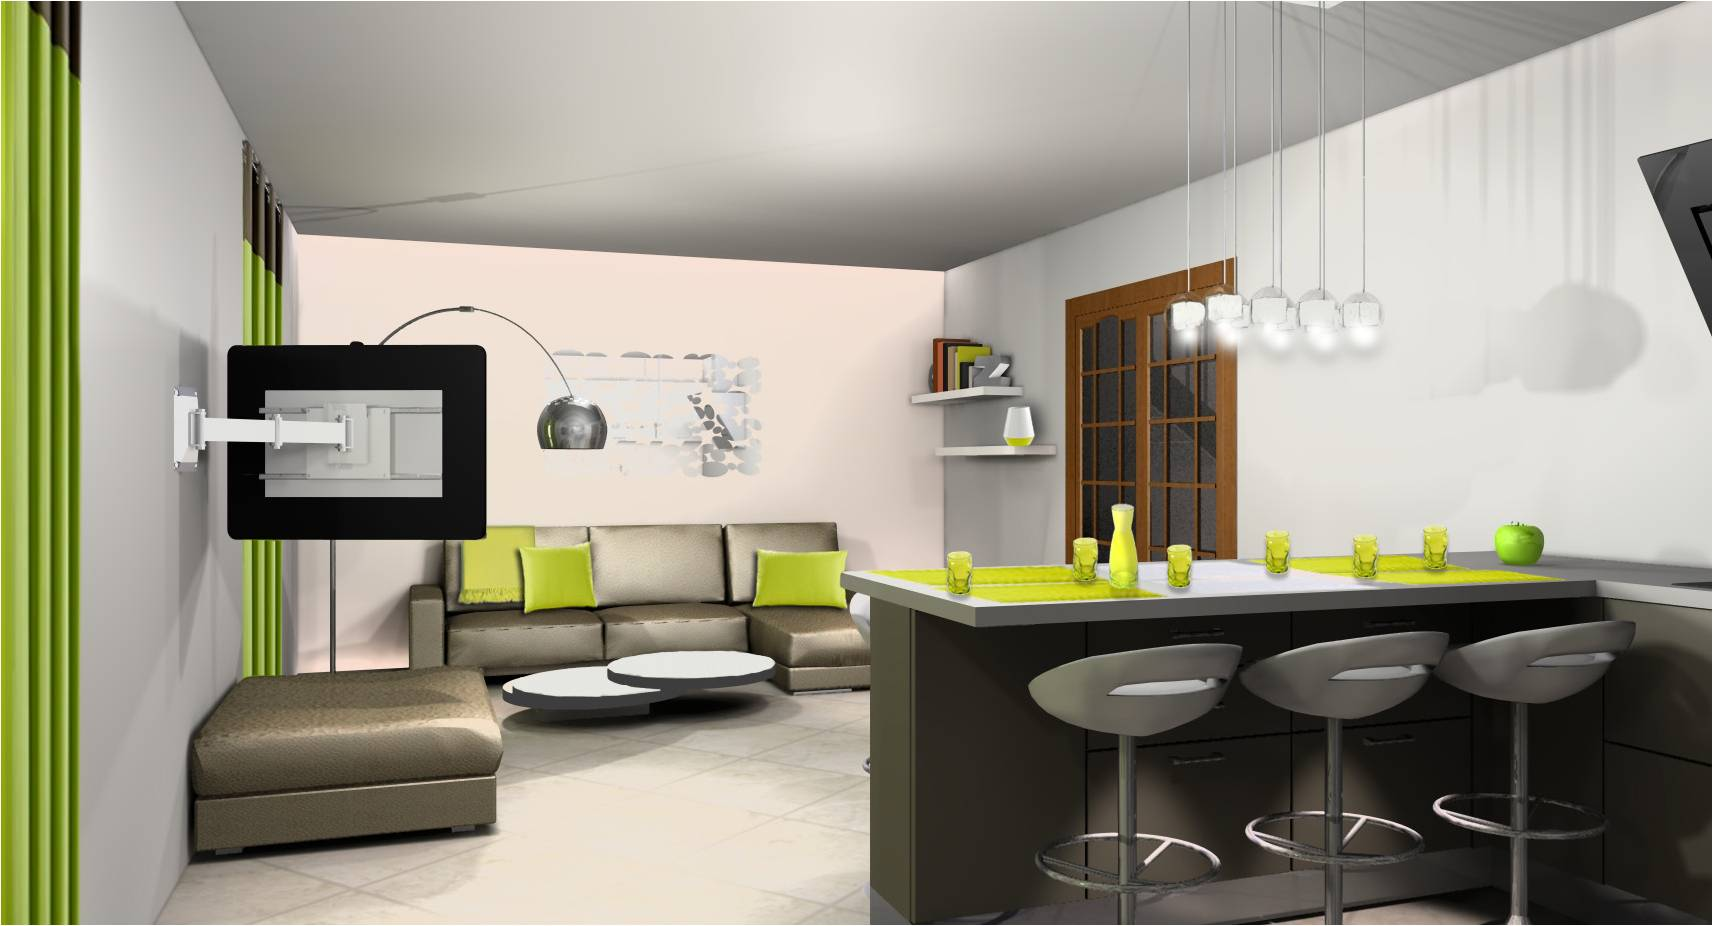 D co cuisine americaine exemples d 39 am nagements for Amenagement salon avec cuisine americaine